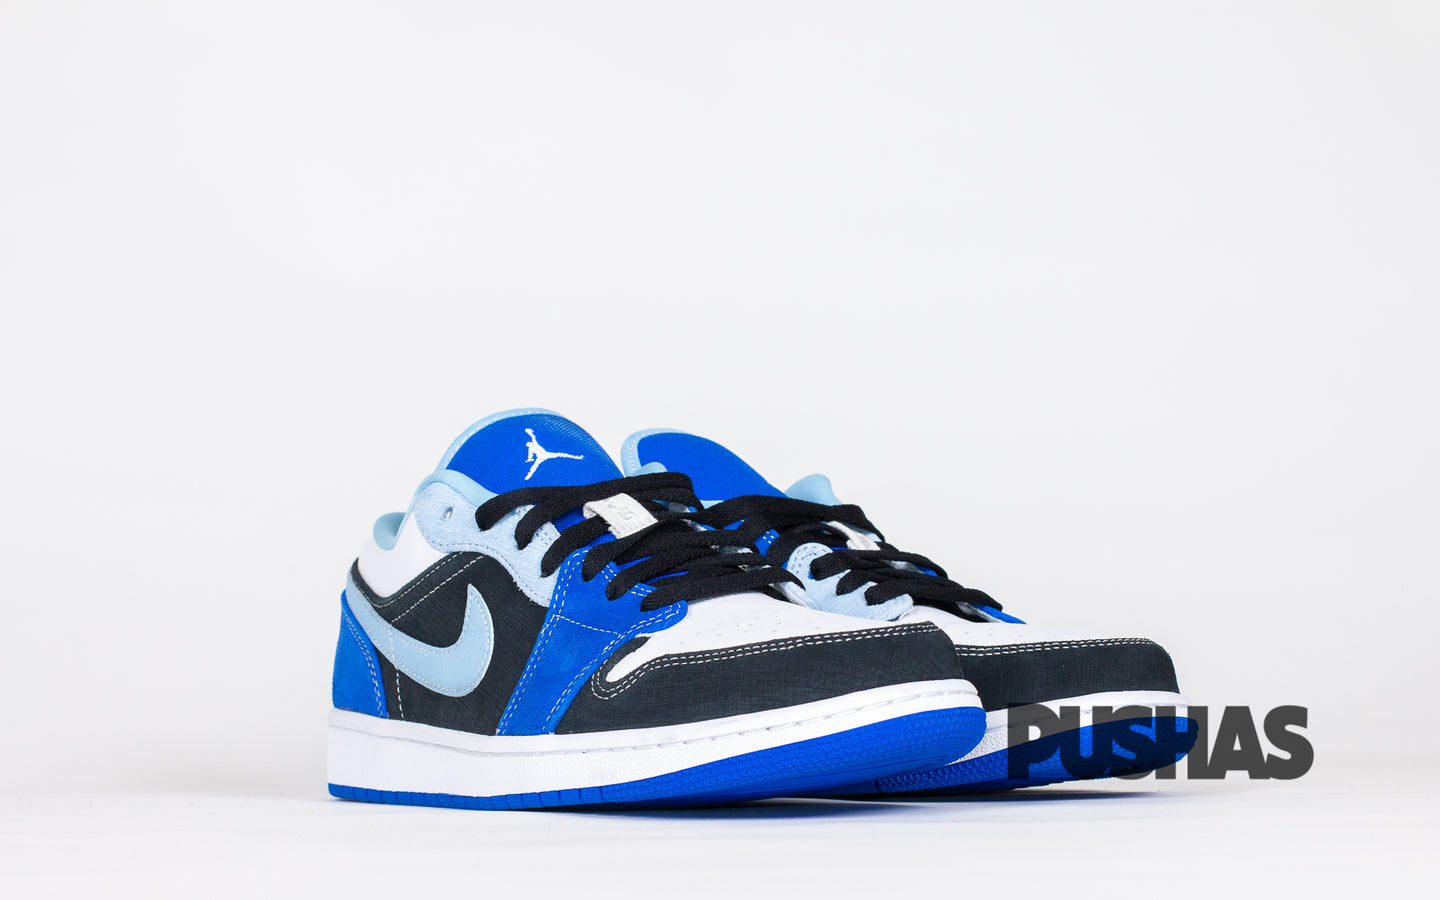 pushas-nike-Air-Jordan-1-Low-Black-Blue-White